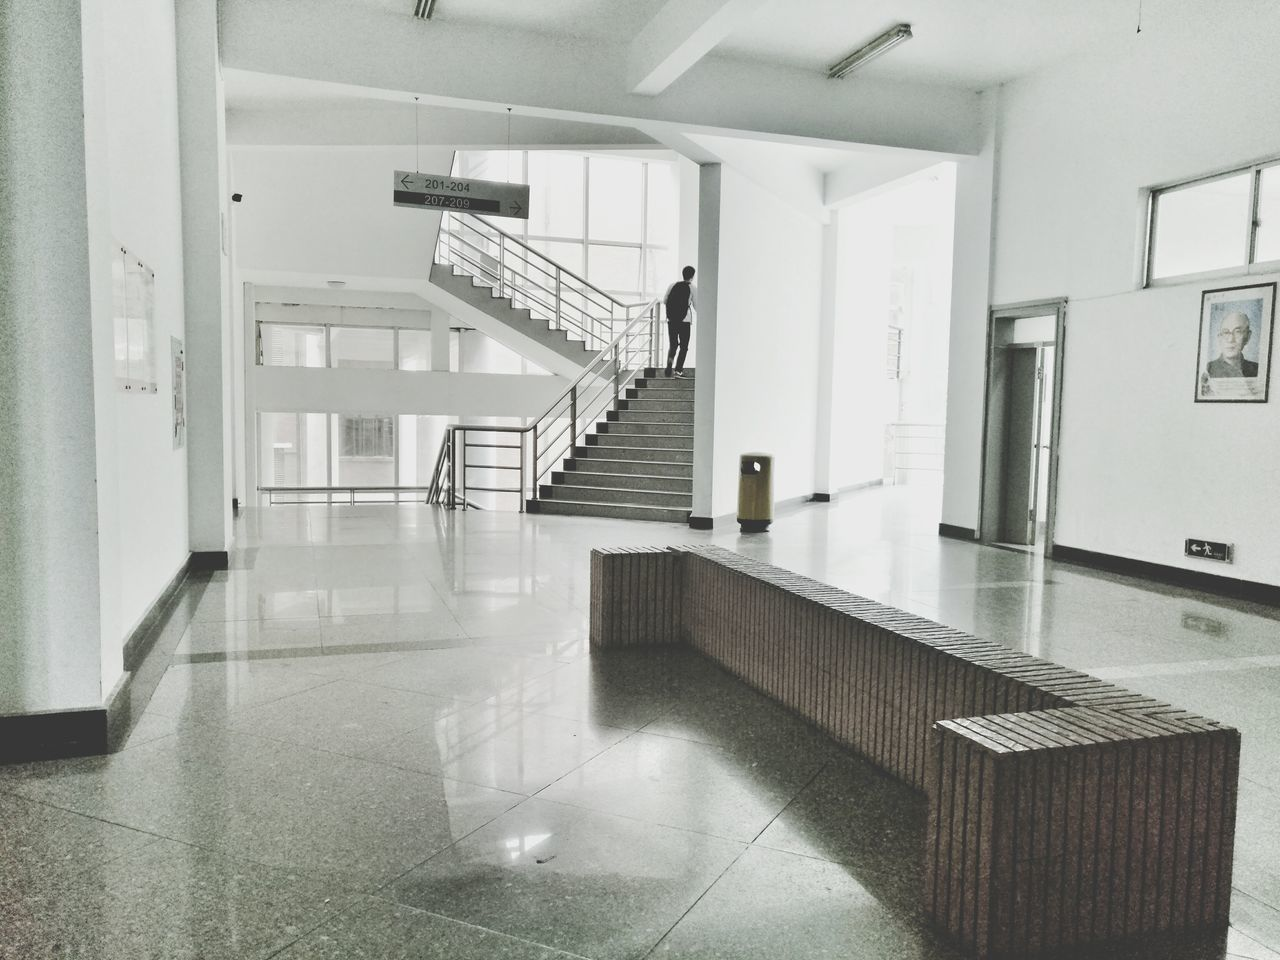 staircase, steps and staircases, railing, steps, architecture, indoors, built structure, stairs, corridor, the way forward, no people, hand rail, day